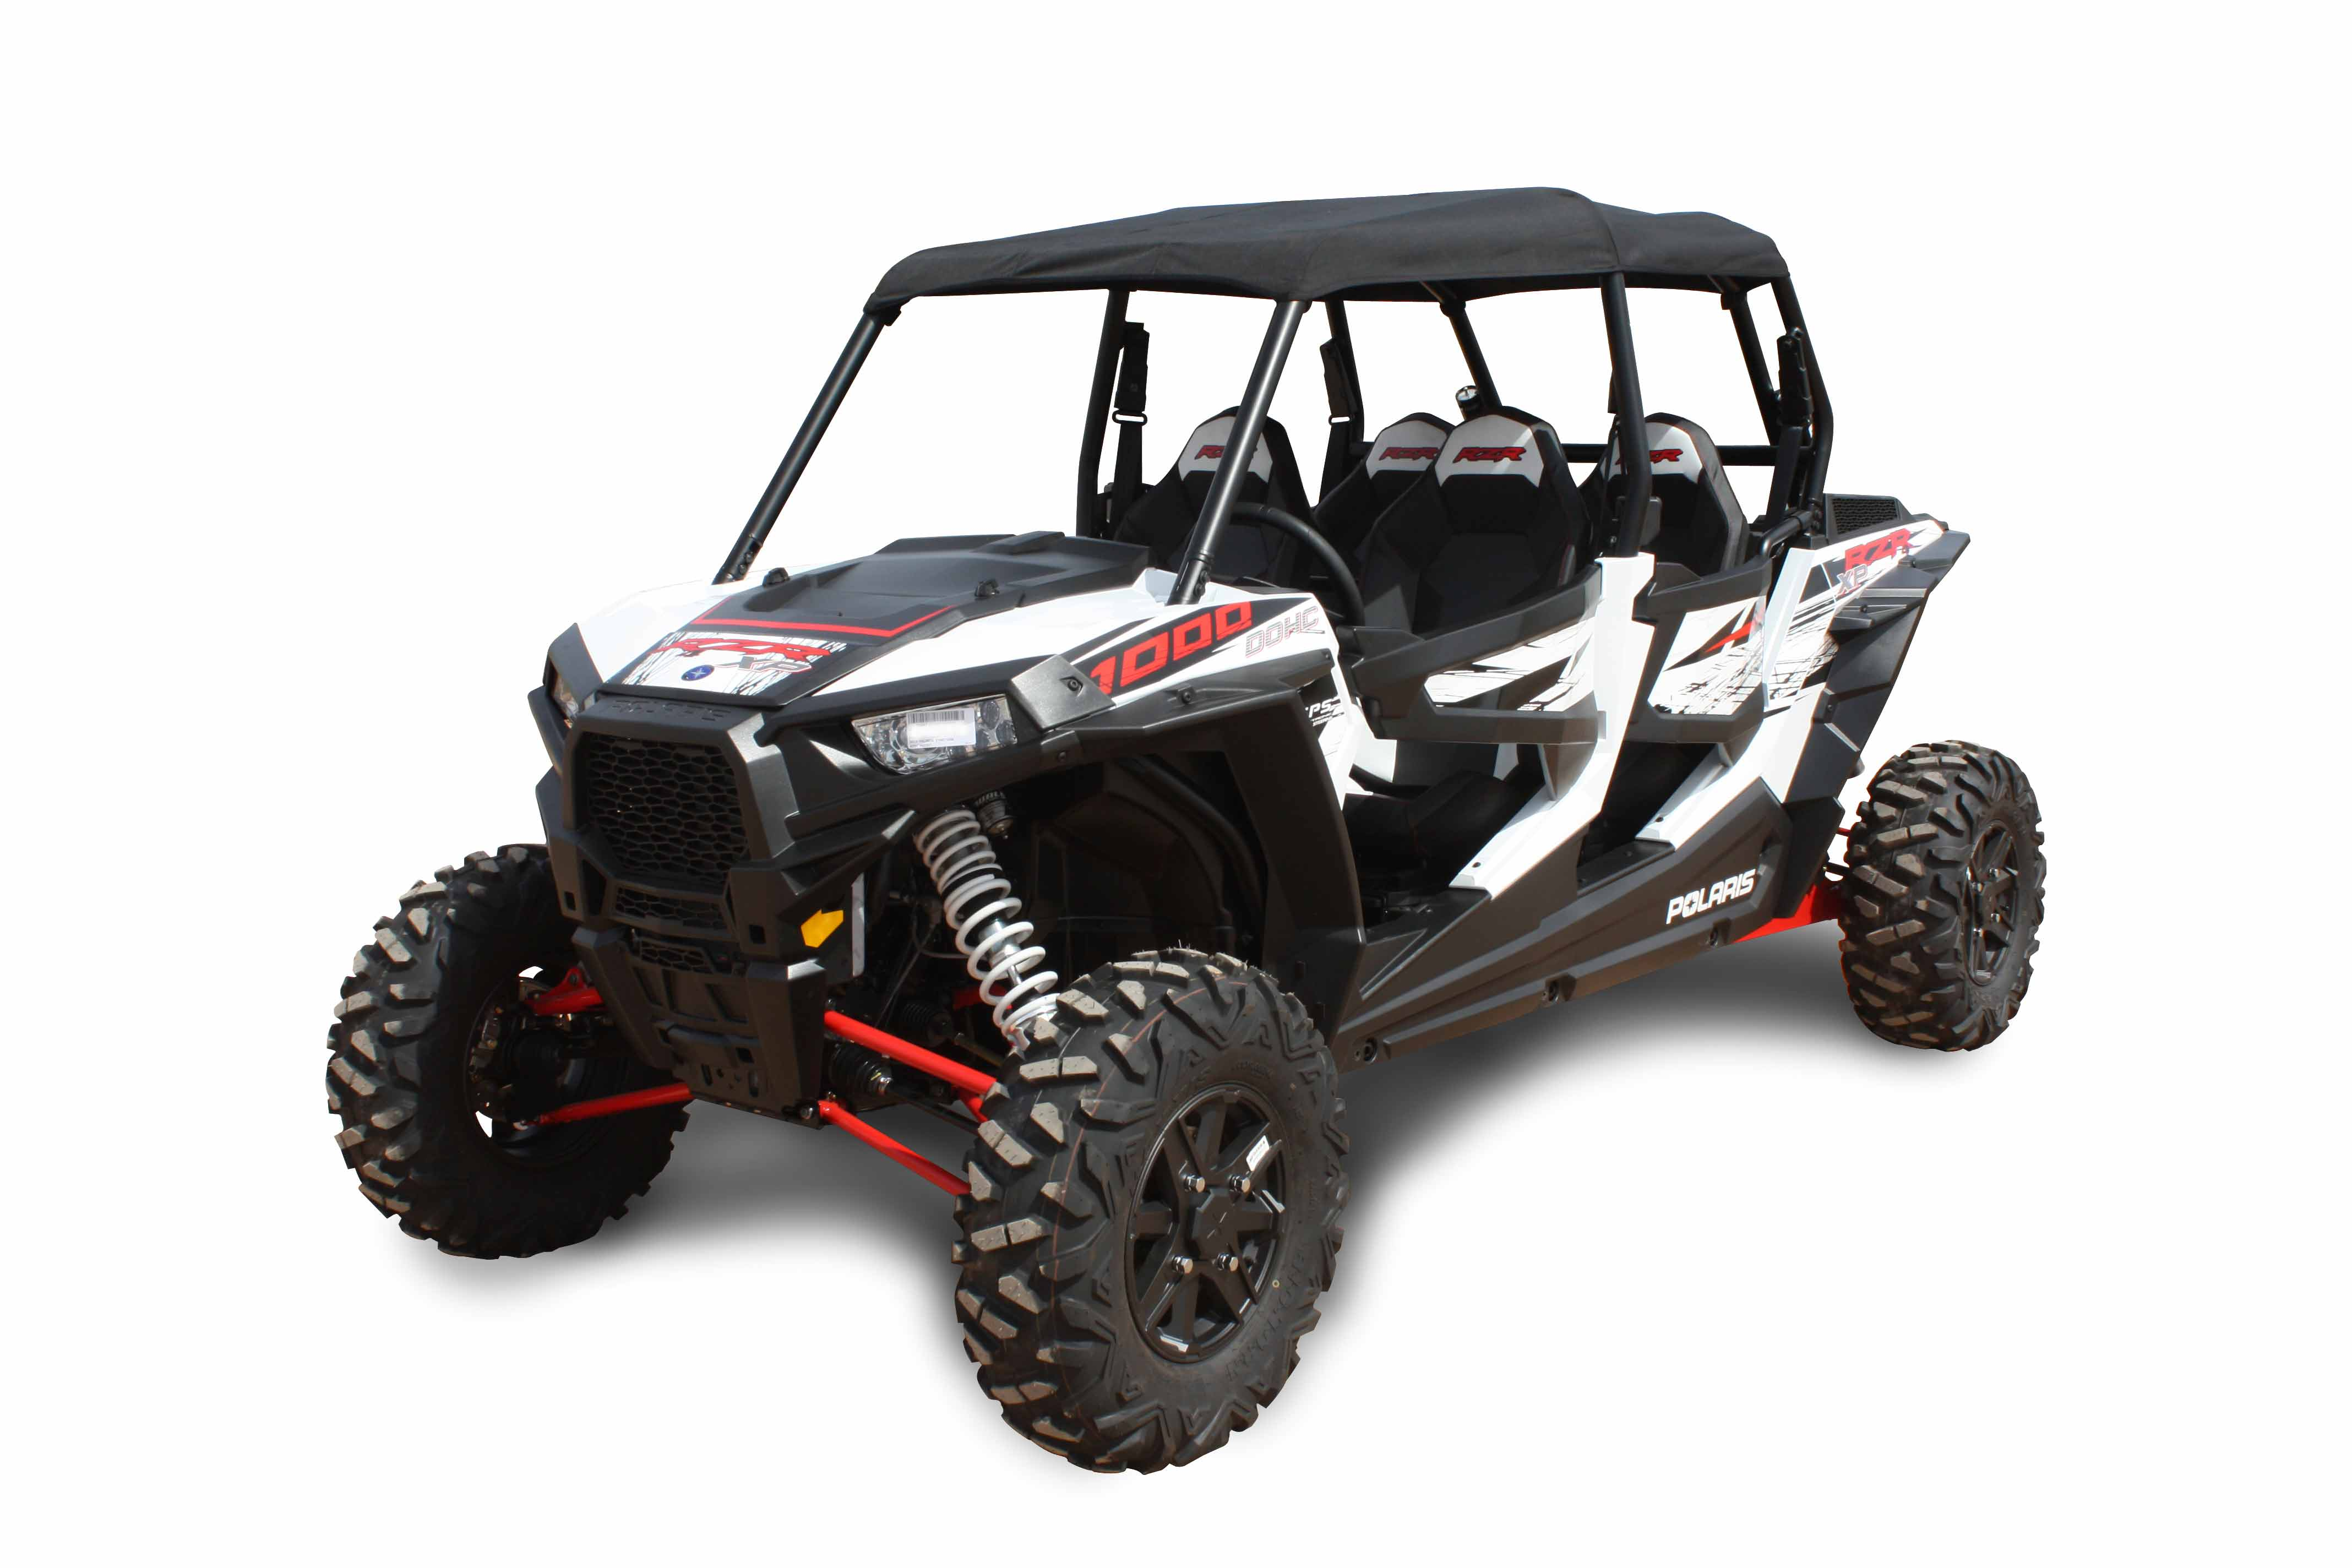 Dragonfire racing softtop for rzr xp 4 1000 2015 for Yamaha rzr 1000